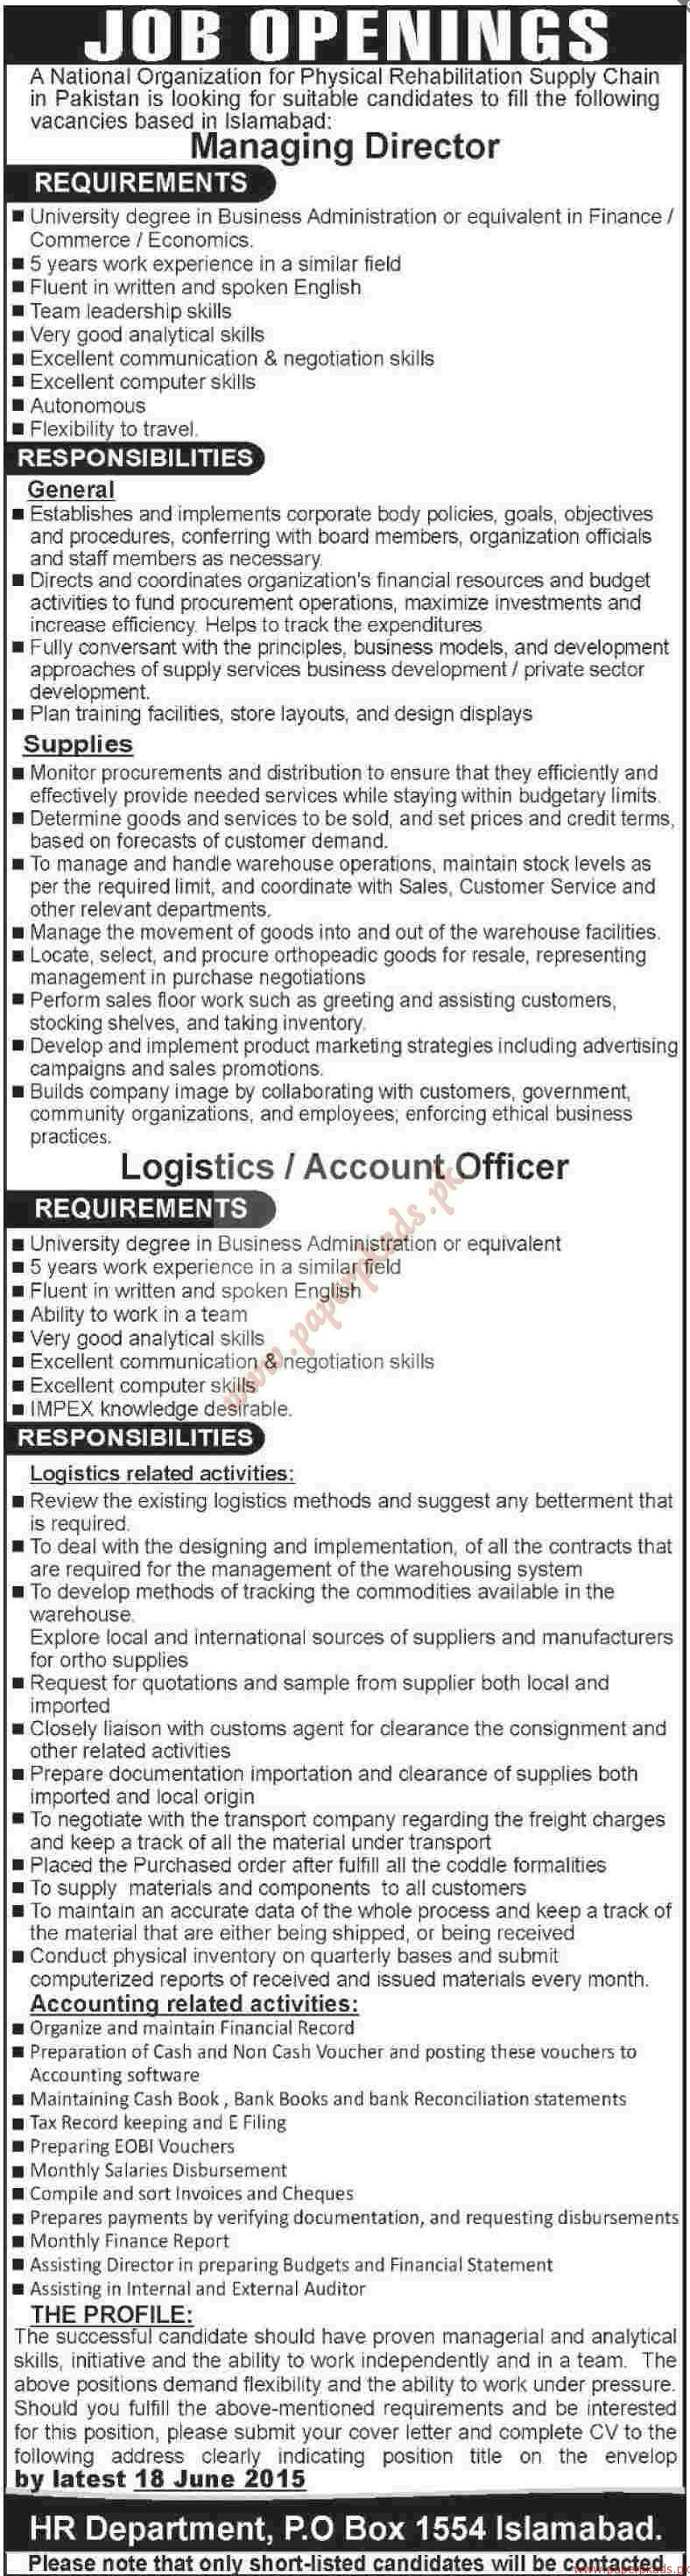 National Organization Jobs - Dawn Jobs ads 04 June 2015